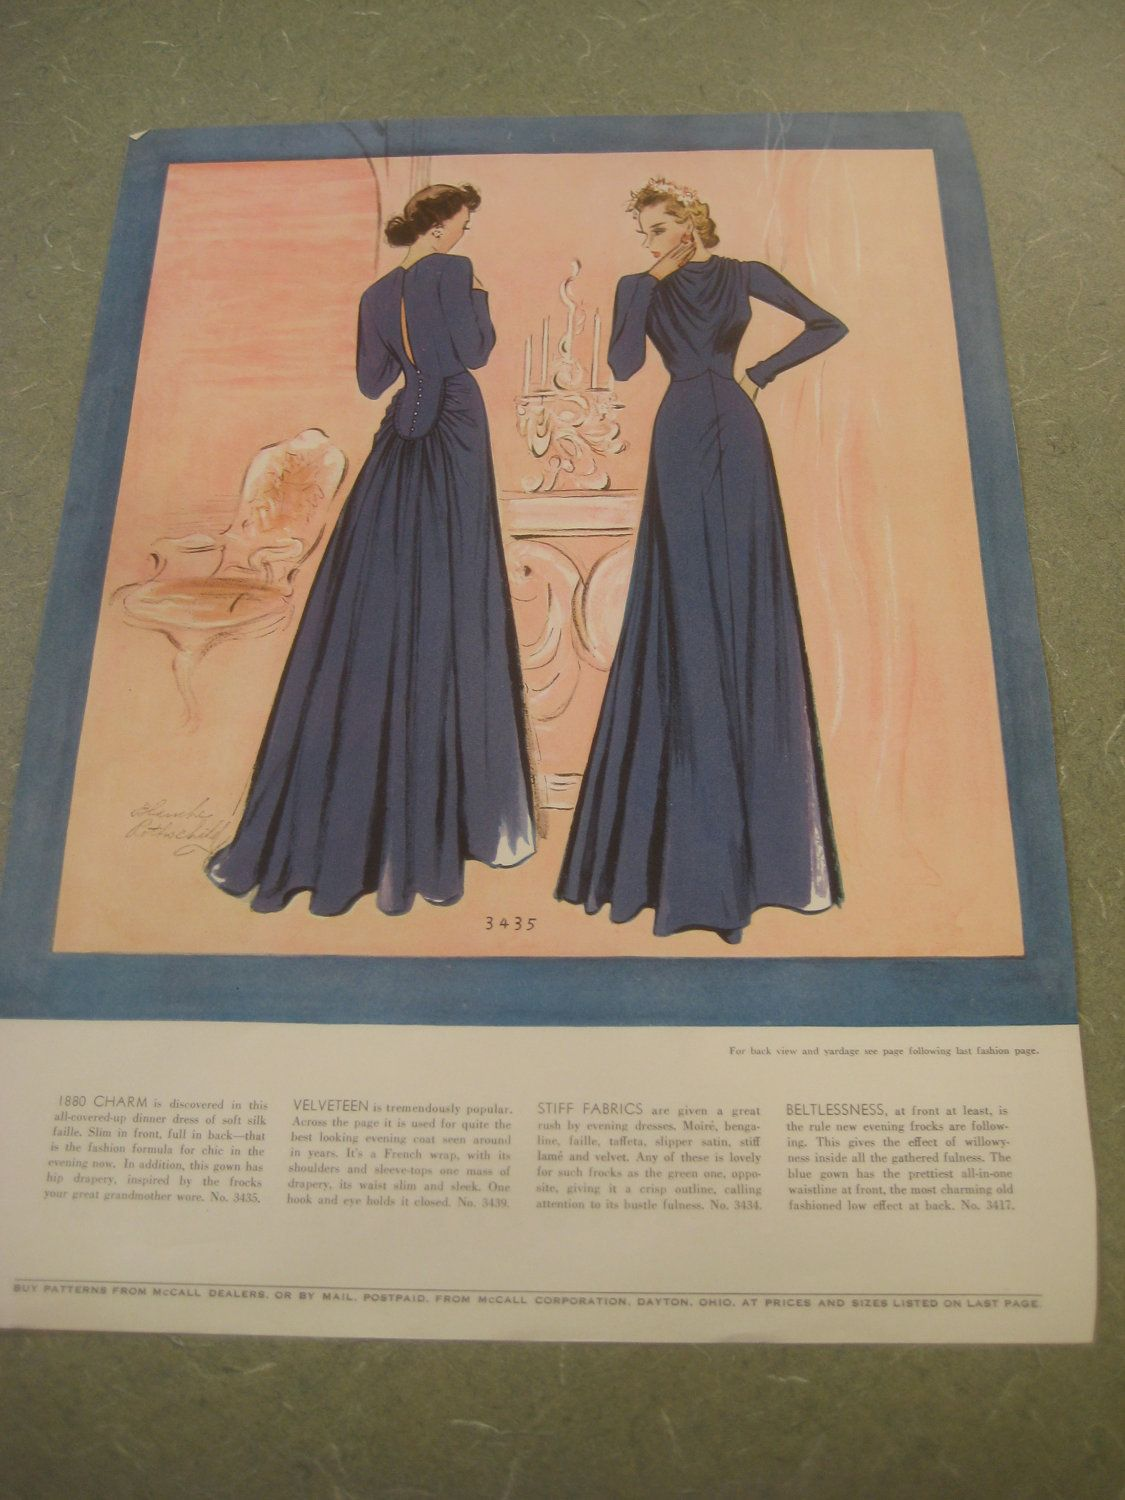 Vintage Dress Pattern Illustrations, 1930s Dresses from McCall's Pattern Book, Thirties Fashion, Two-Sided Page of Dresses. $8.50, via Etsy.